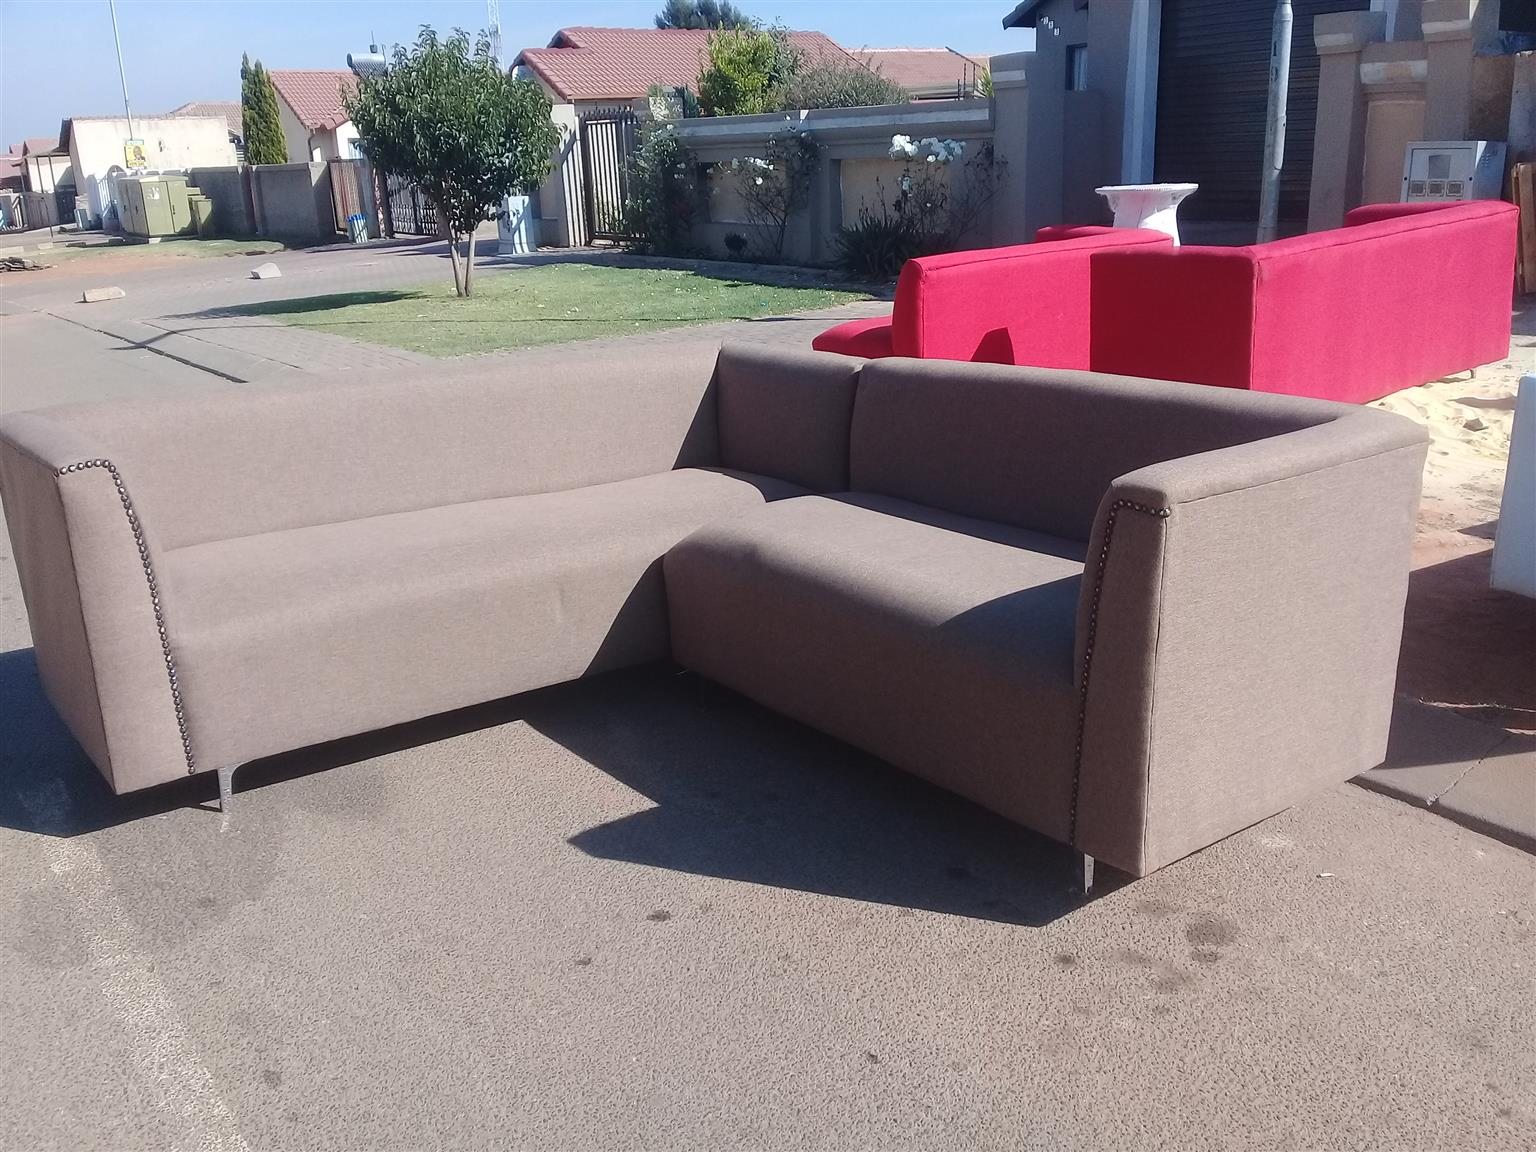 Couch clearance sale R2500 red or brown